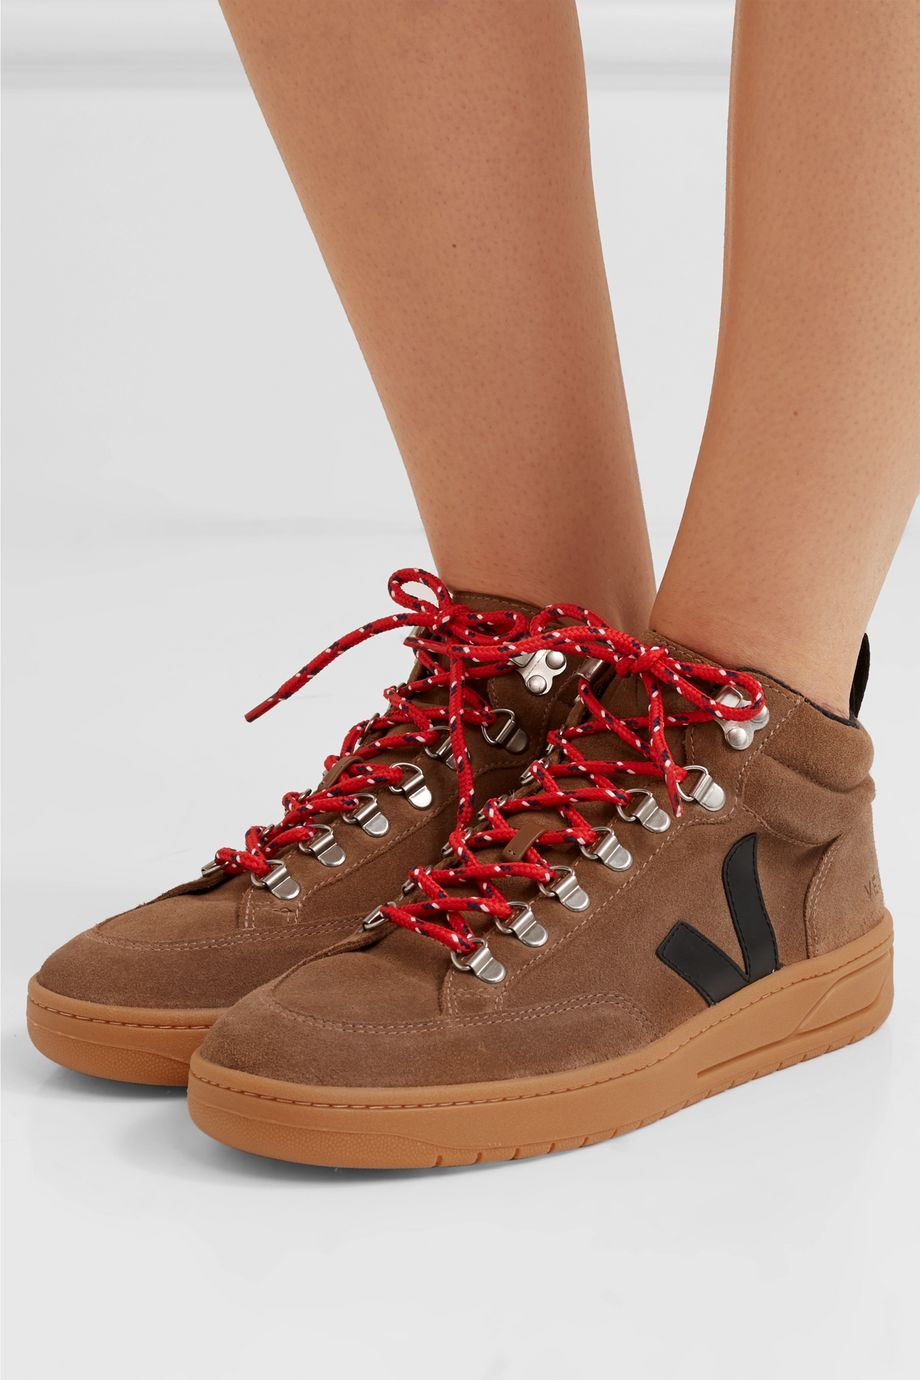 Veja + NET SUSTAIN Roraima suede and leather high-top sneakers